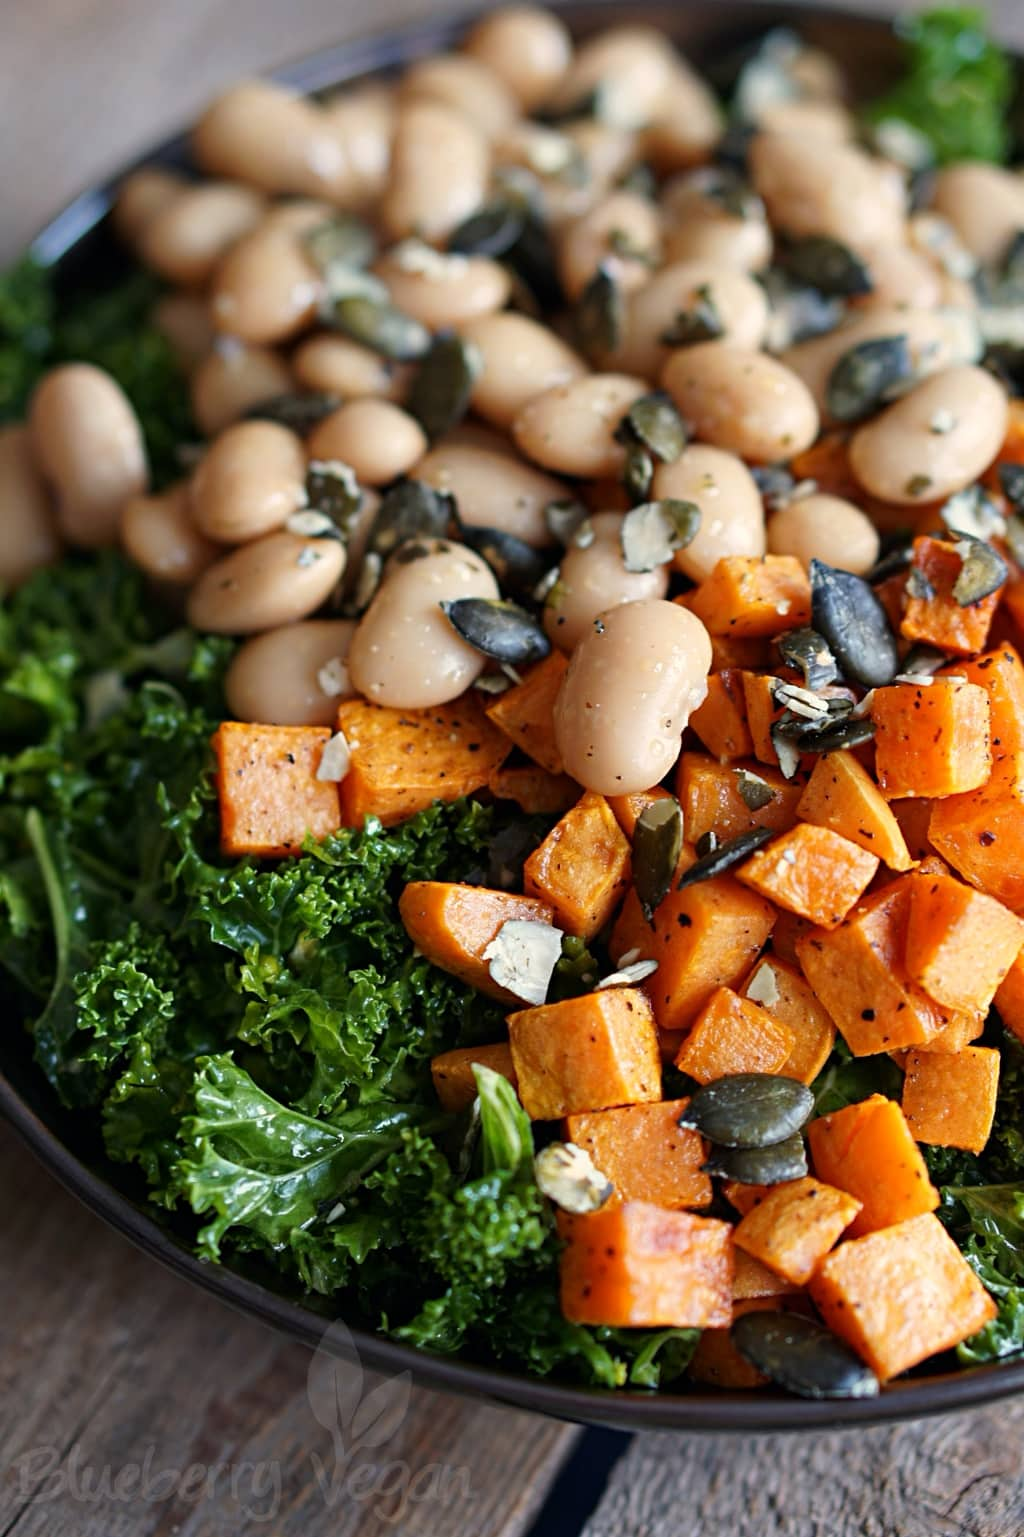 Kale Salad with Roasted Sweet Potato and Giant White Beans